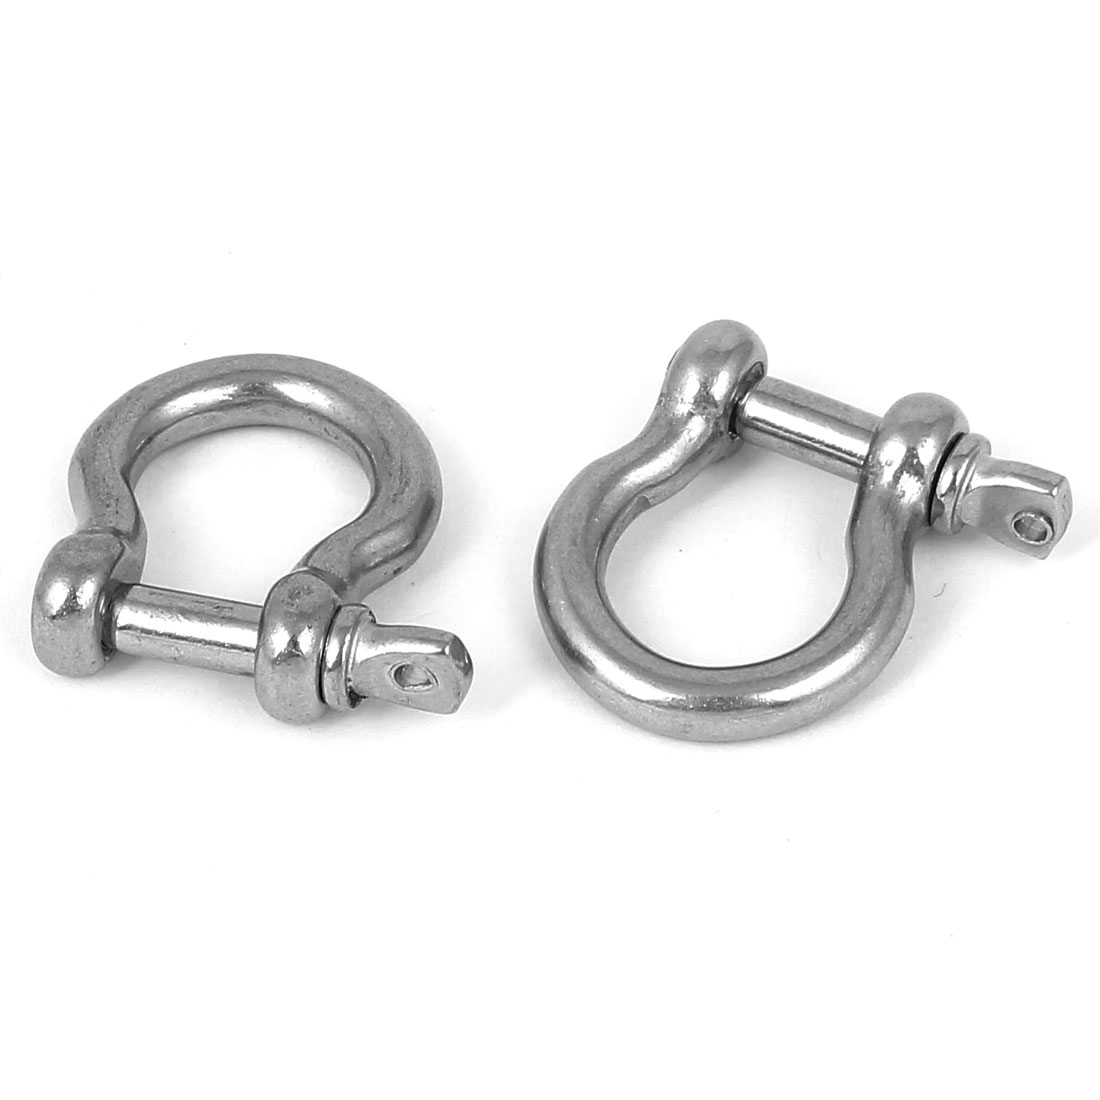 4mm Thread Screw Pin Anchor Shackles Wire Rope Bow Shackle 2PCS